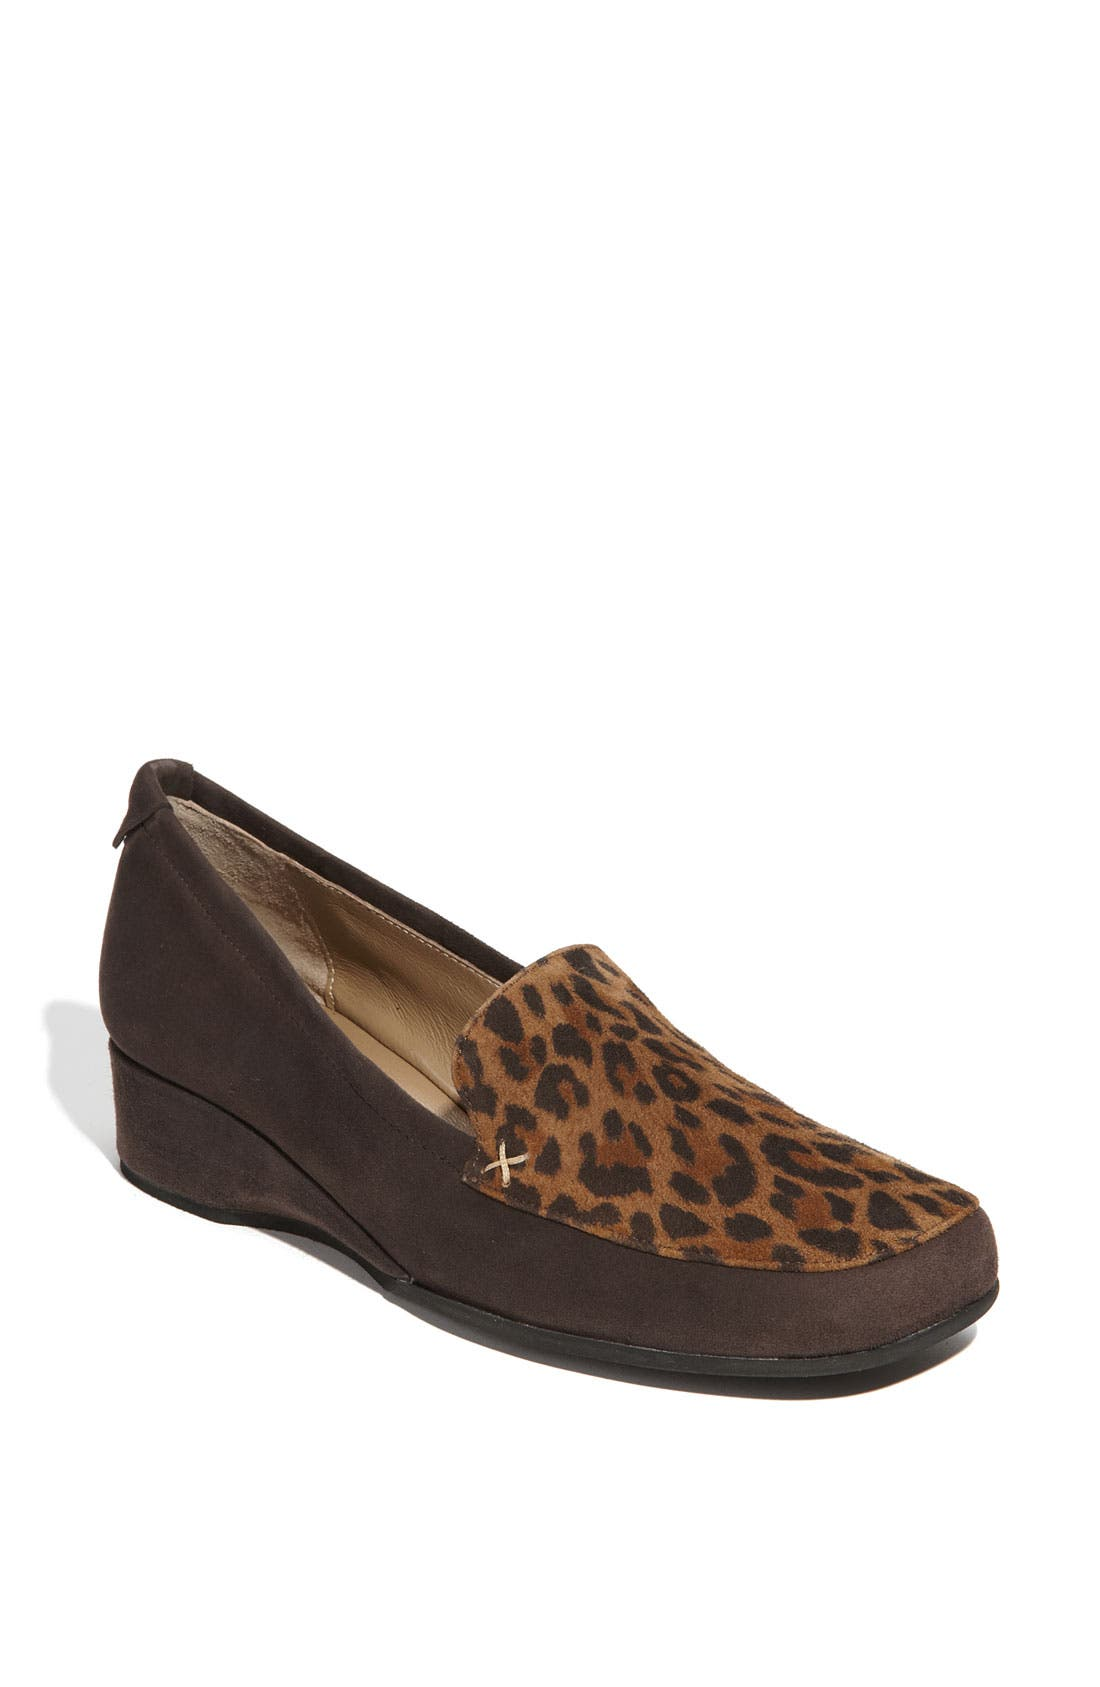 Main Image - Anyi Lu 'Gaby' Loafer